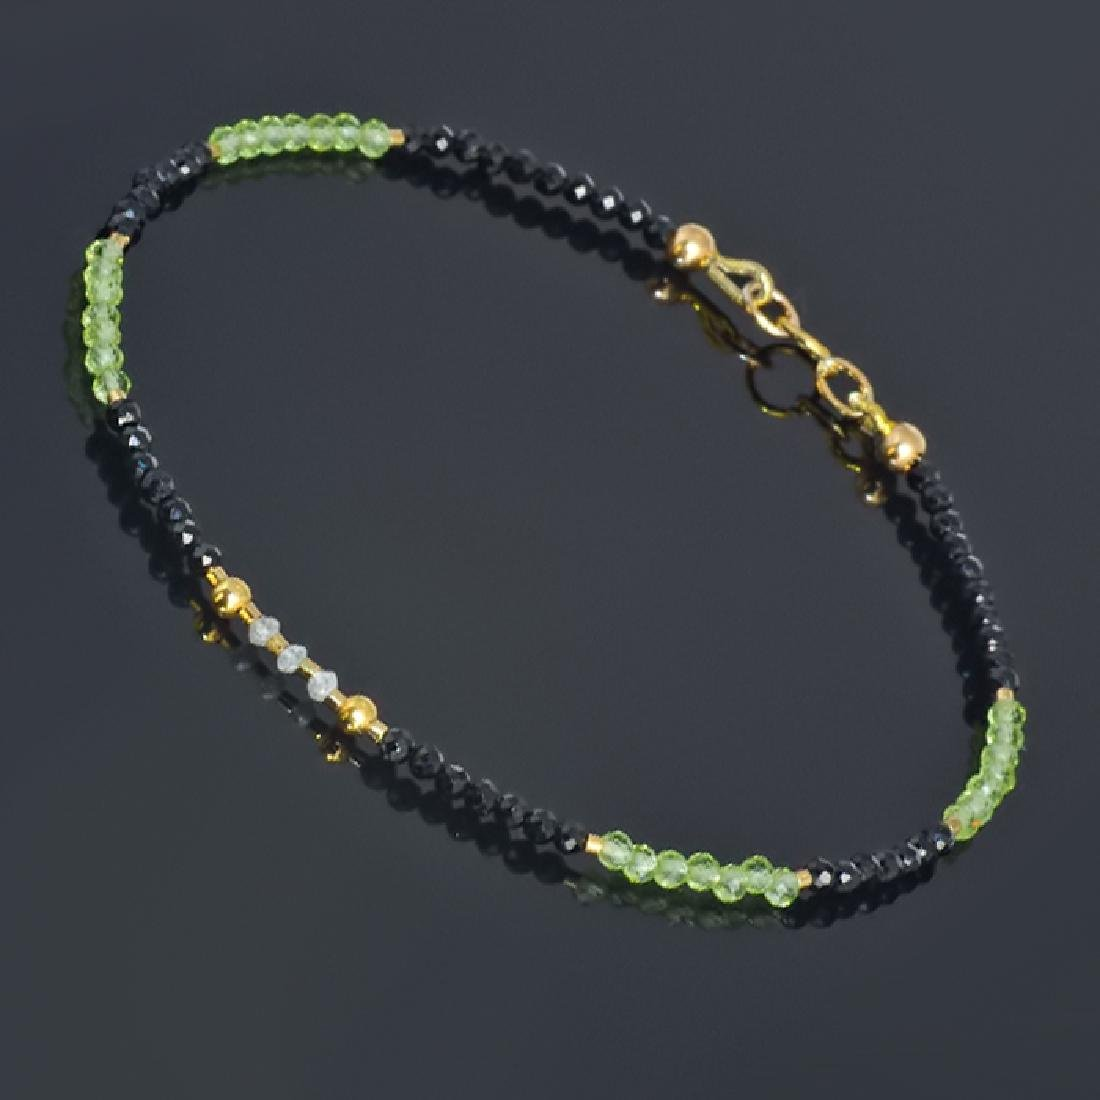 Spinel and Peridot bracelet with Diamonds 0.2 carat - 3